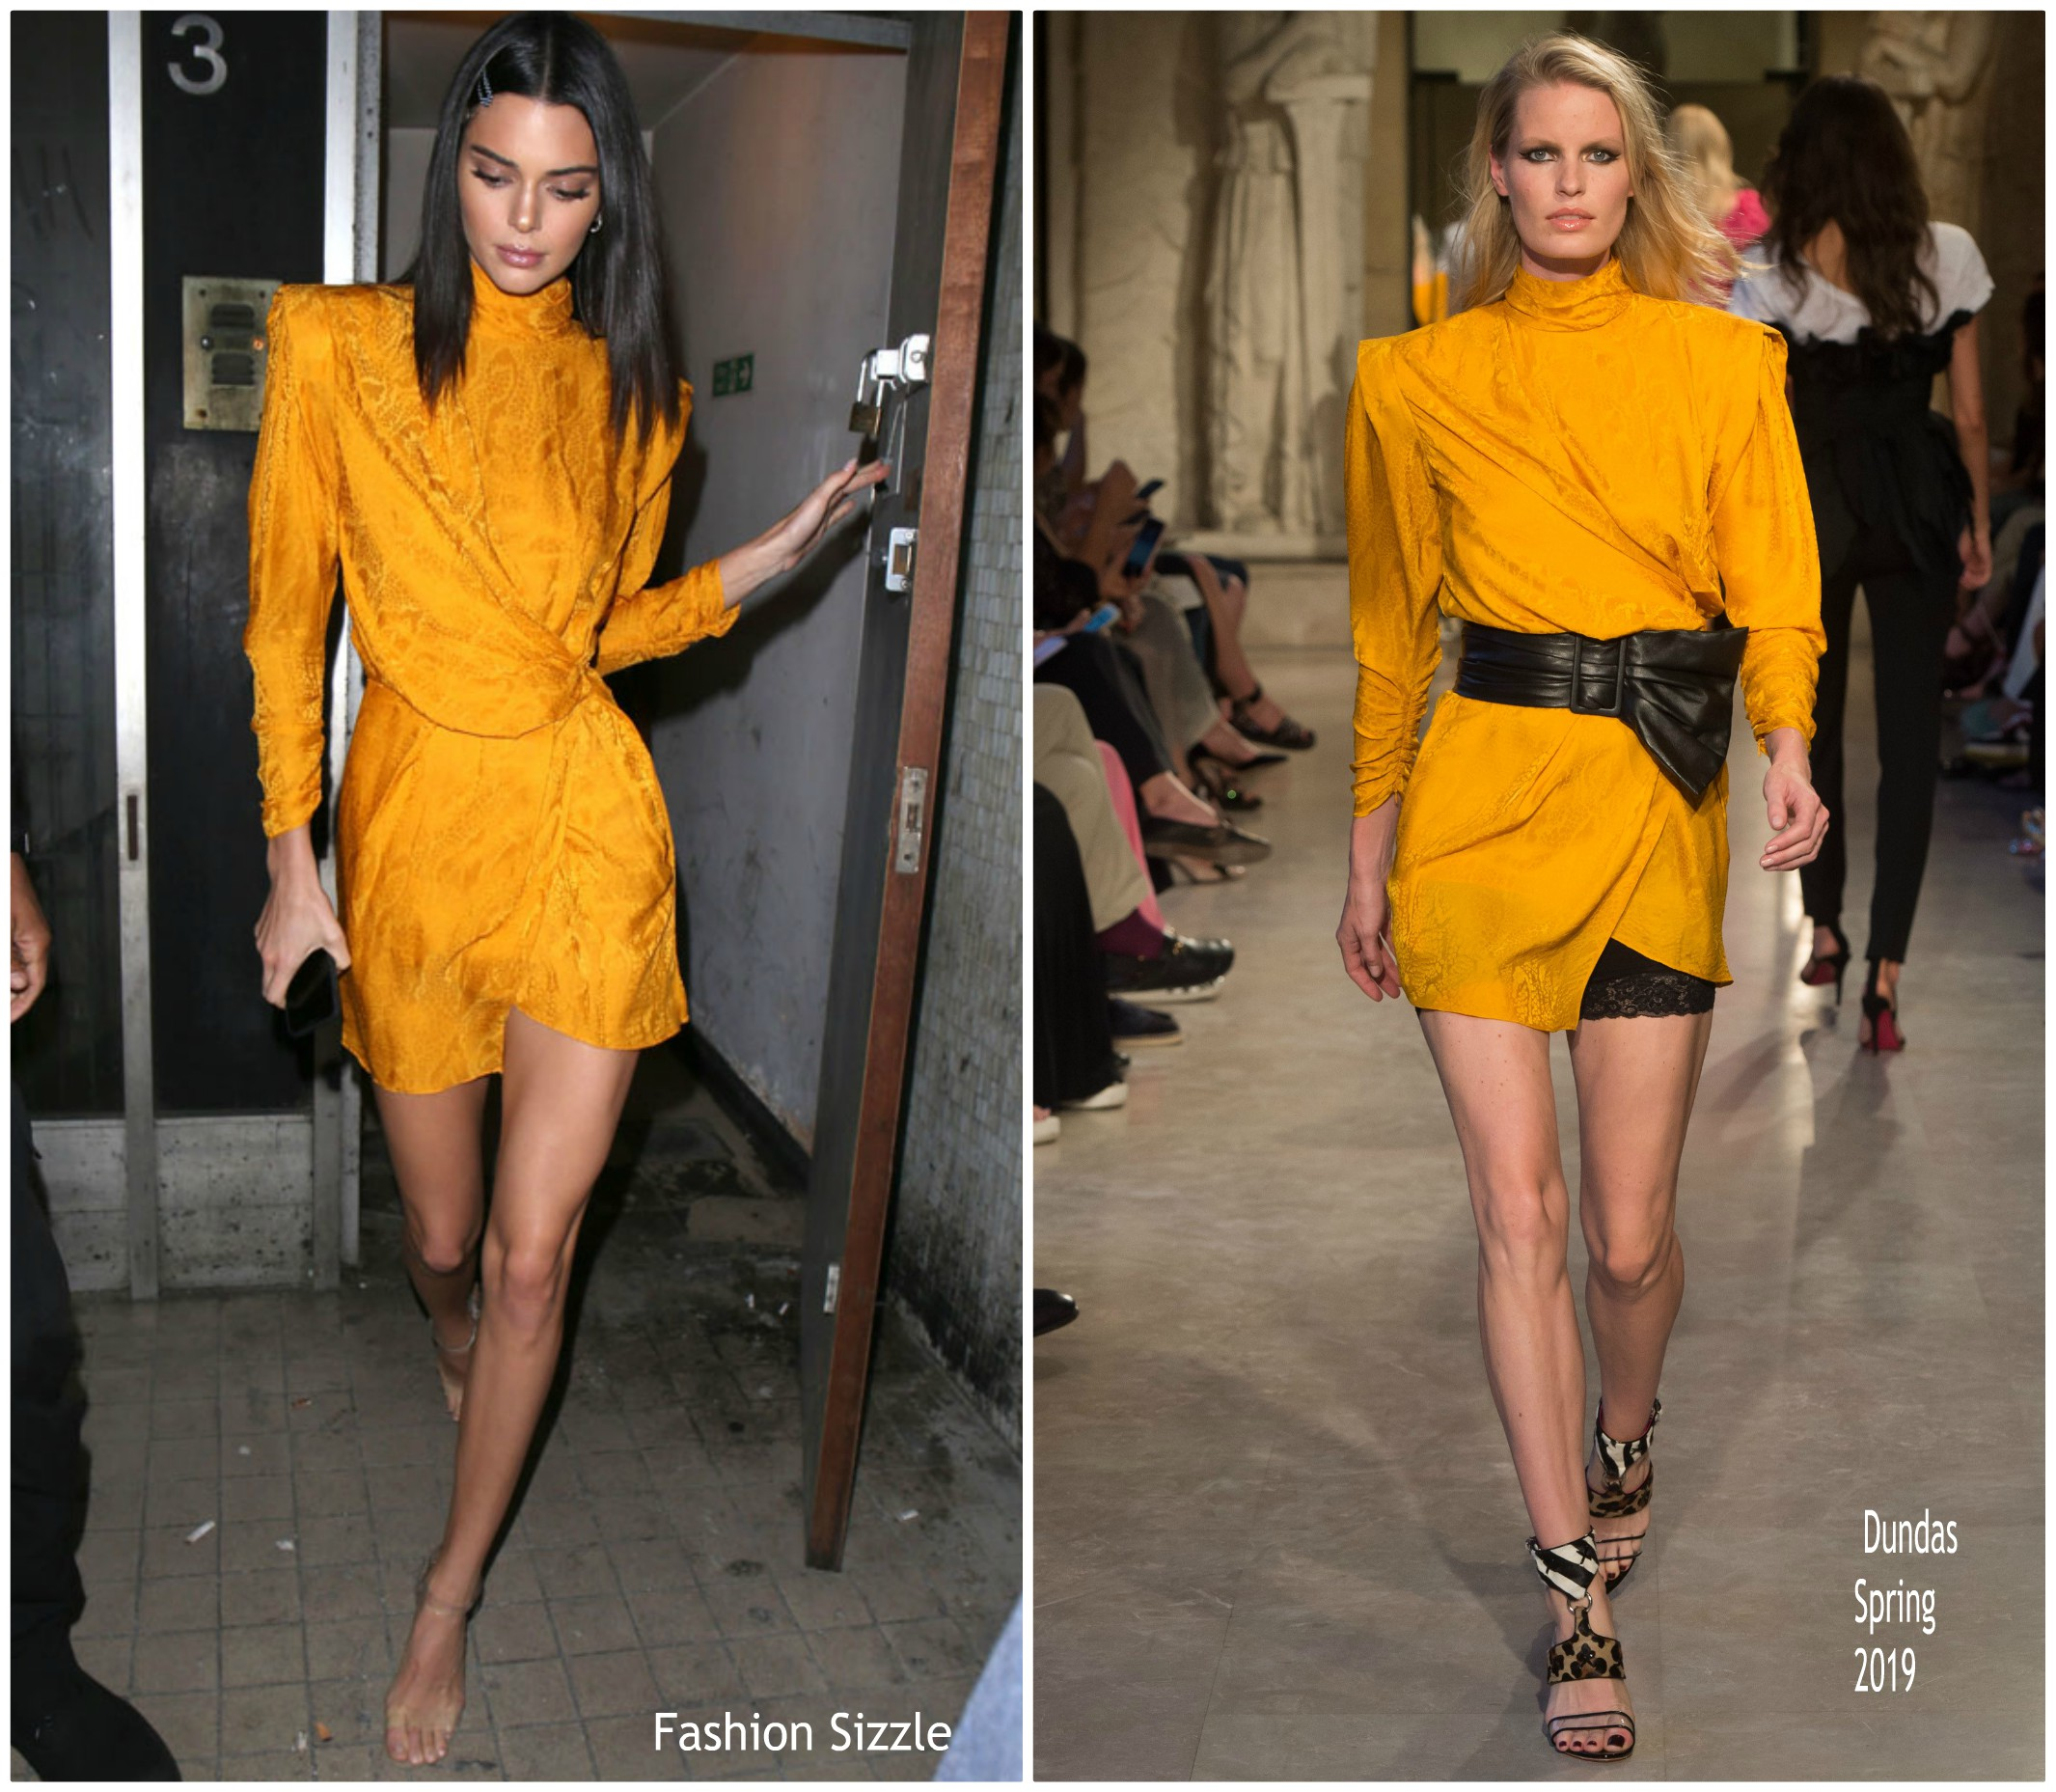 kendall-jenner-in-dundas-chaos-sixtynine-issue-2-launch